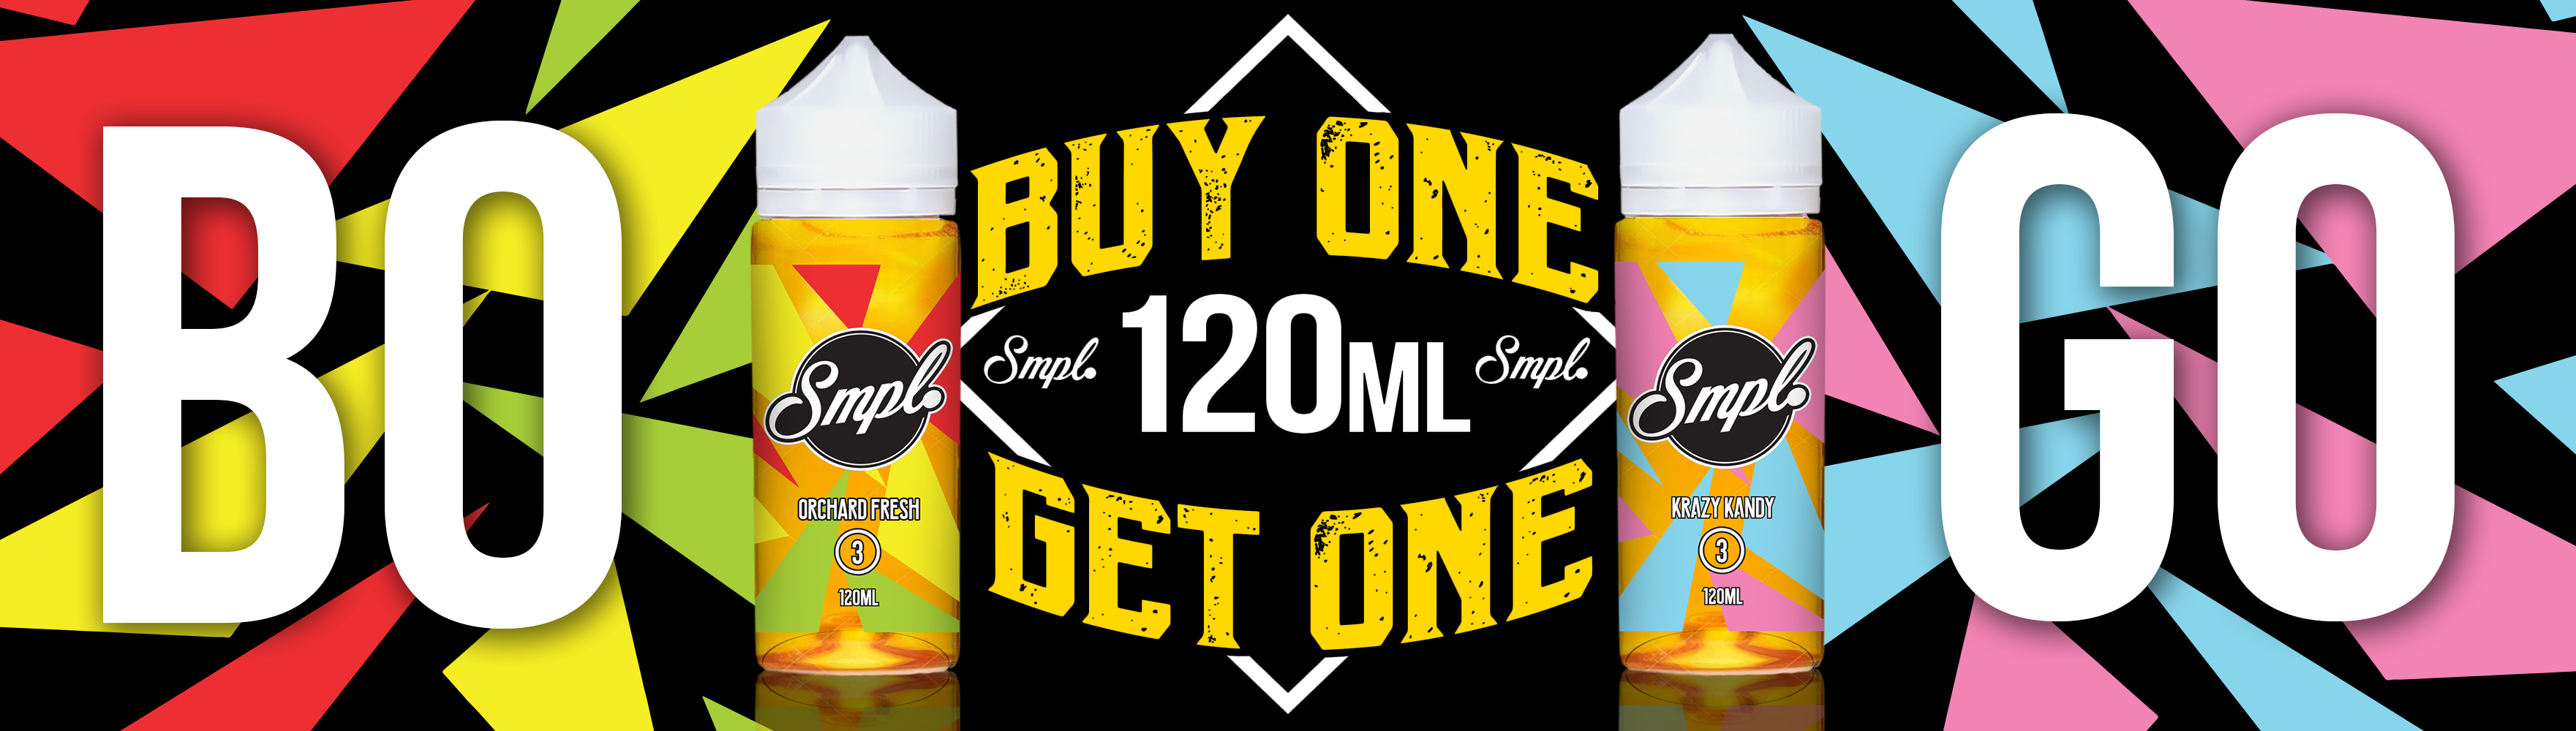 Buy One 120ML Get One 120ML FREE - Only $22